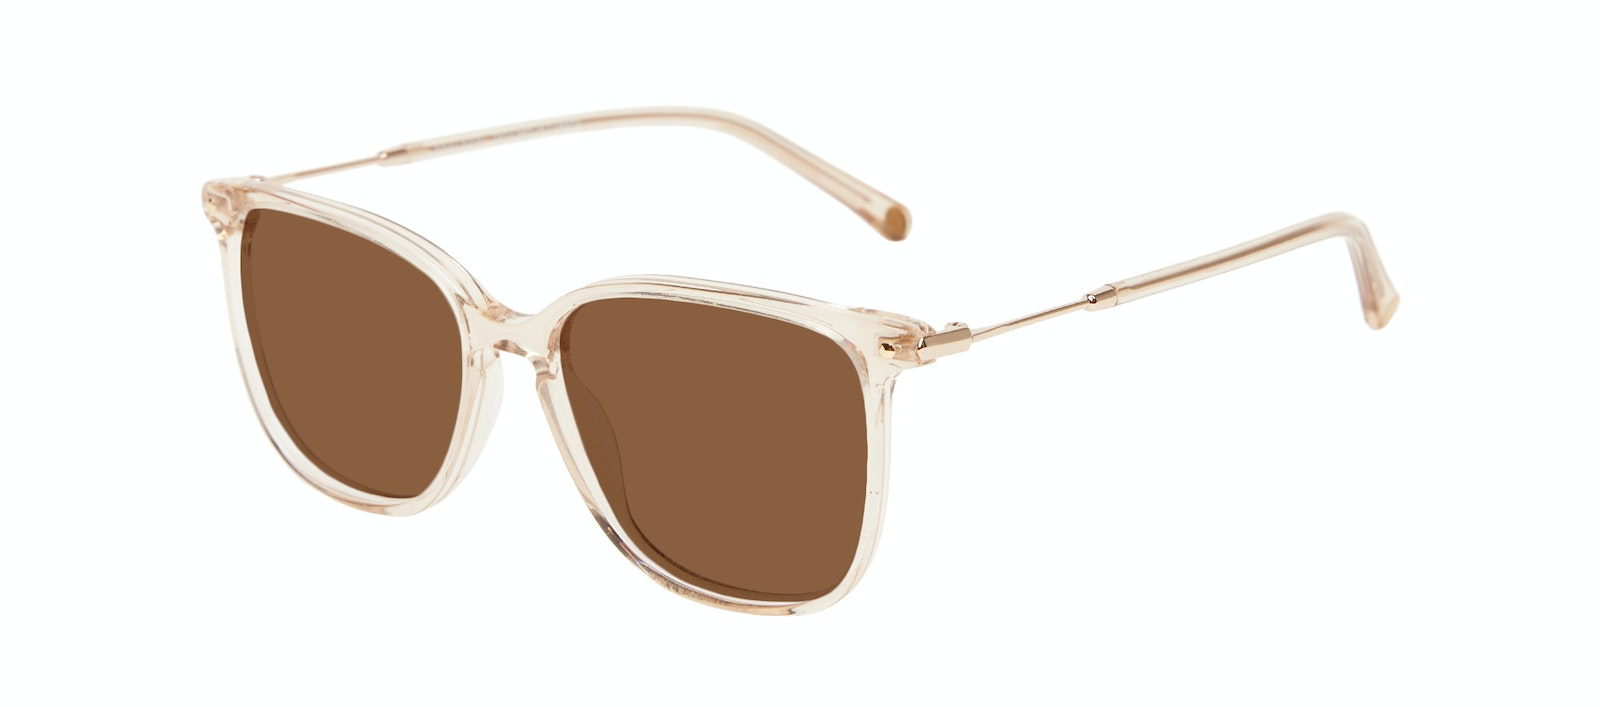 Affordable Fashion Glasses Square Sunglasses Women Sonia Petite Blush Tilt